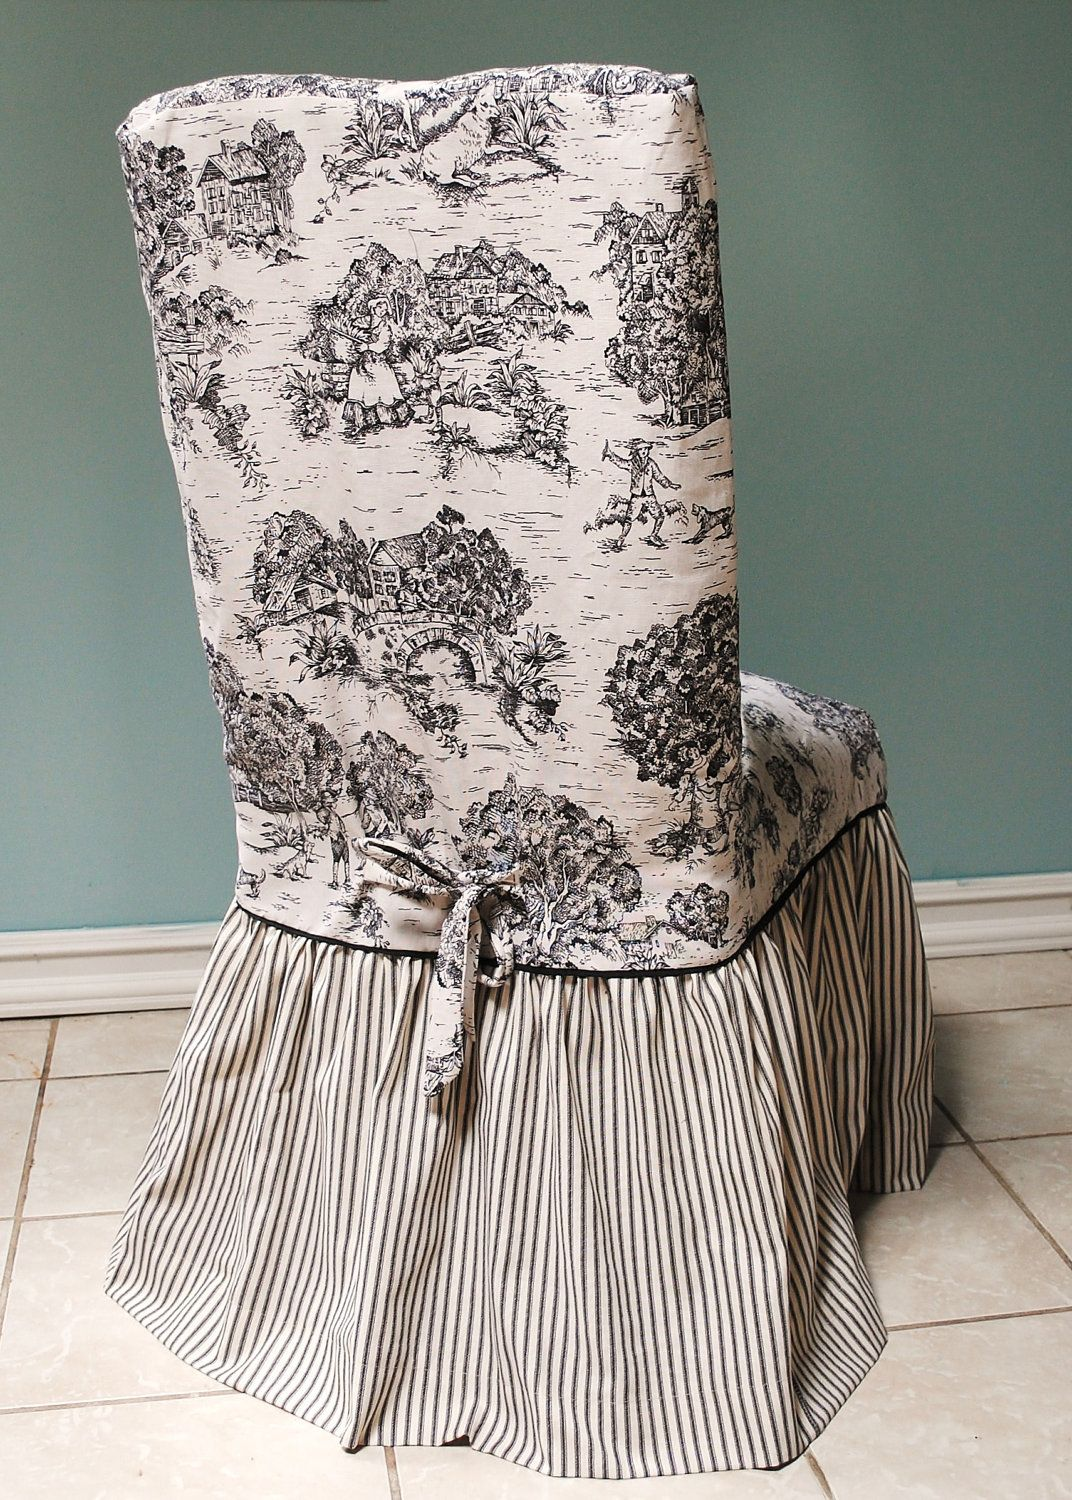 Black And Ivory Toile Chair Cover 8000 Via Etsy Blue White Or Kitchen ChairsDining Room